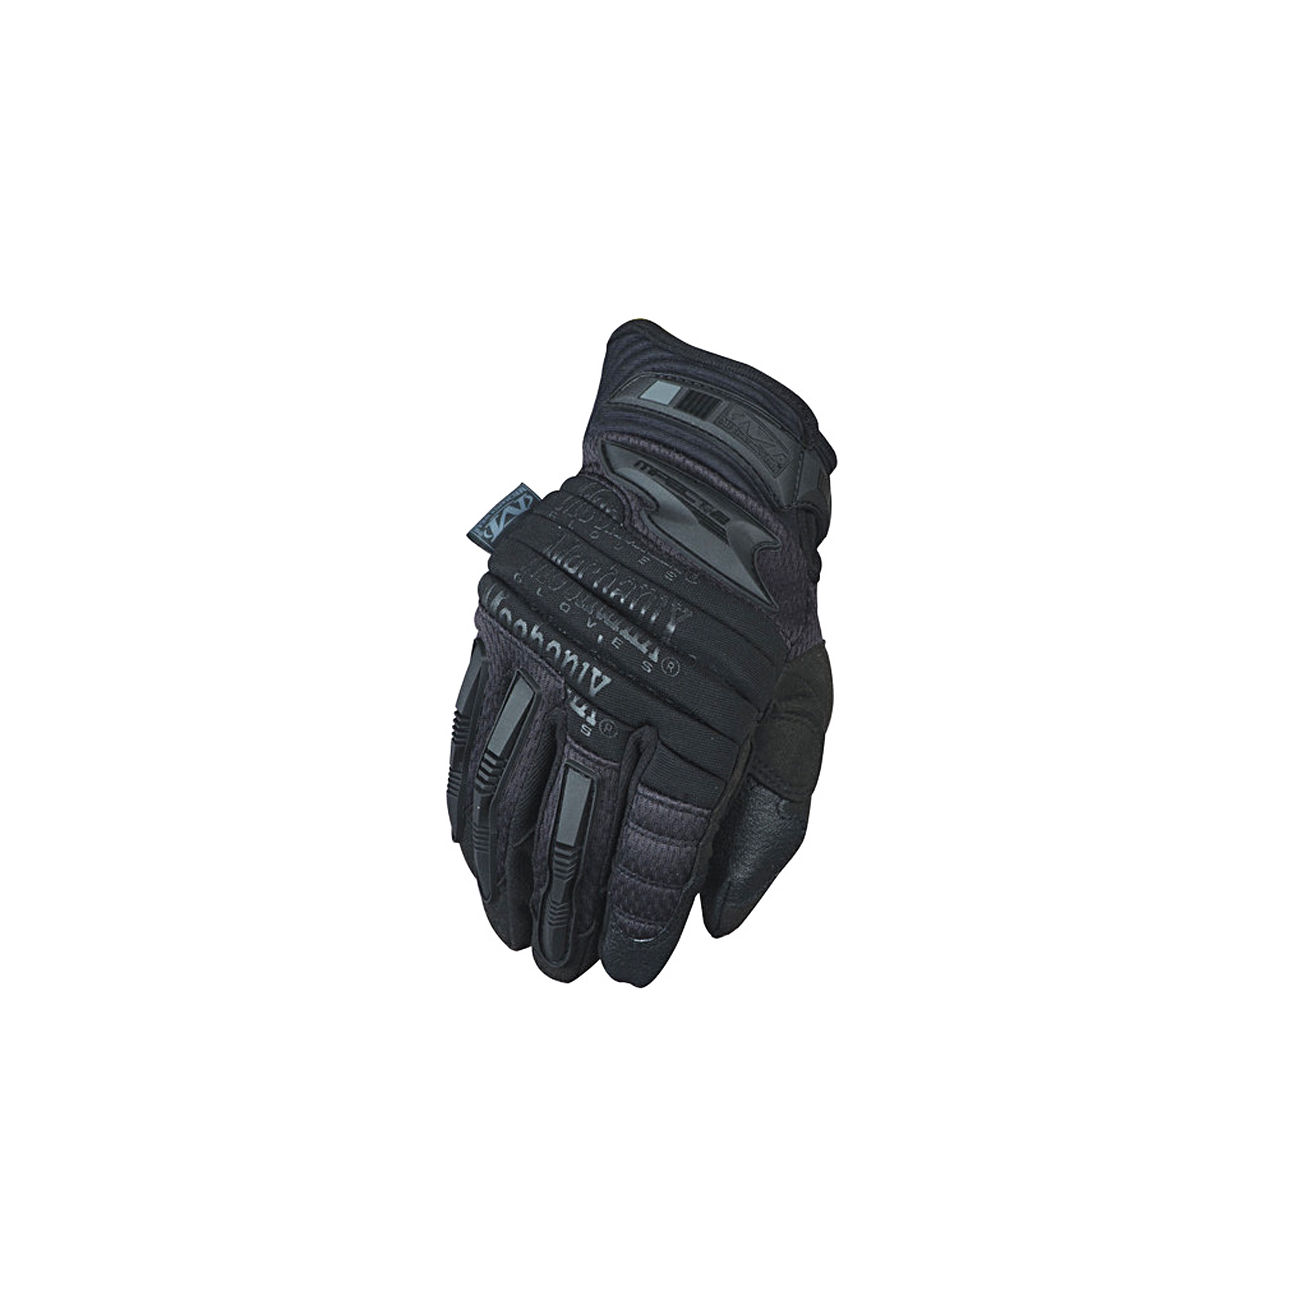 Mechanix Wear M-Pact 2 Handschuhe covert 0